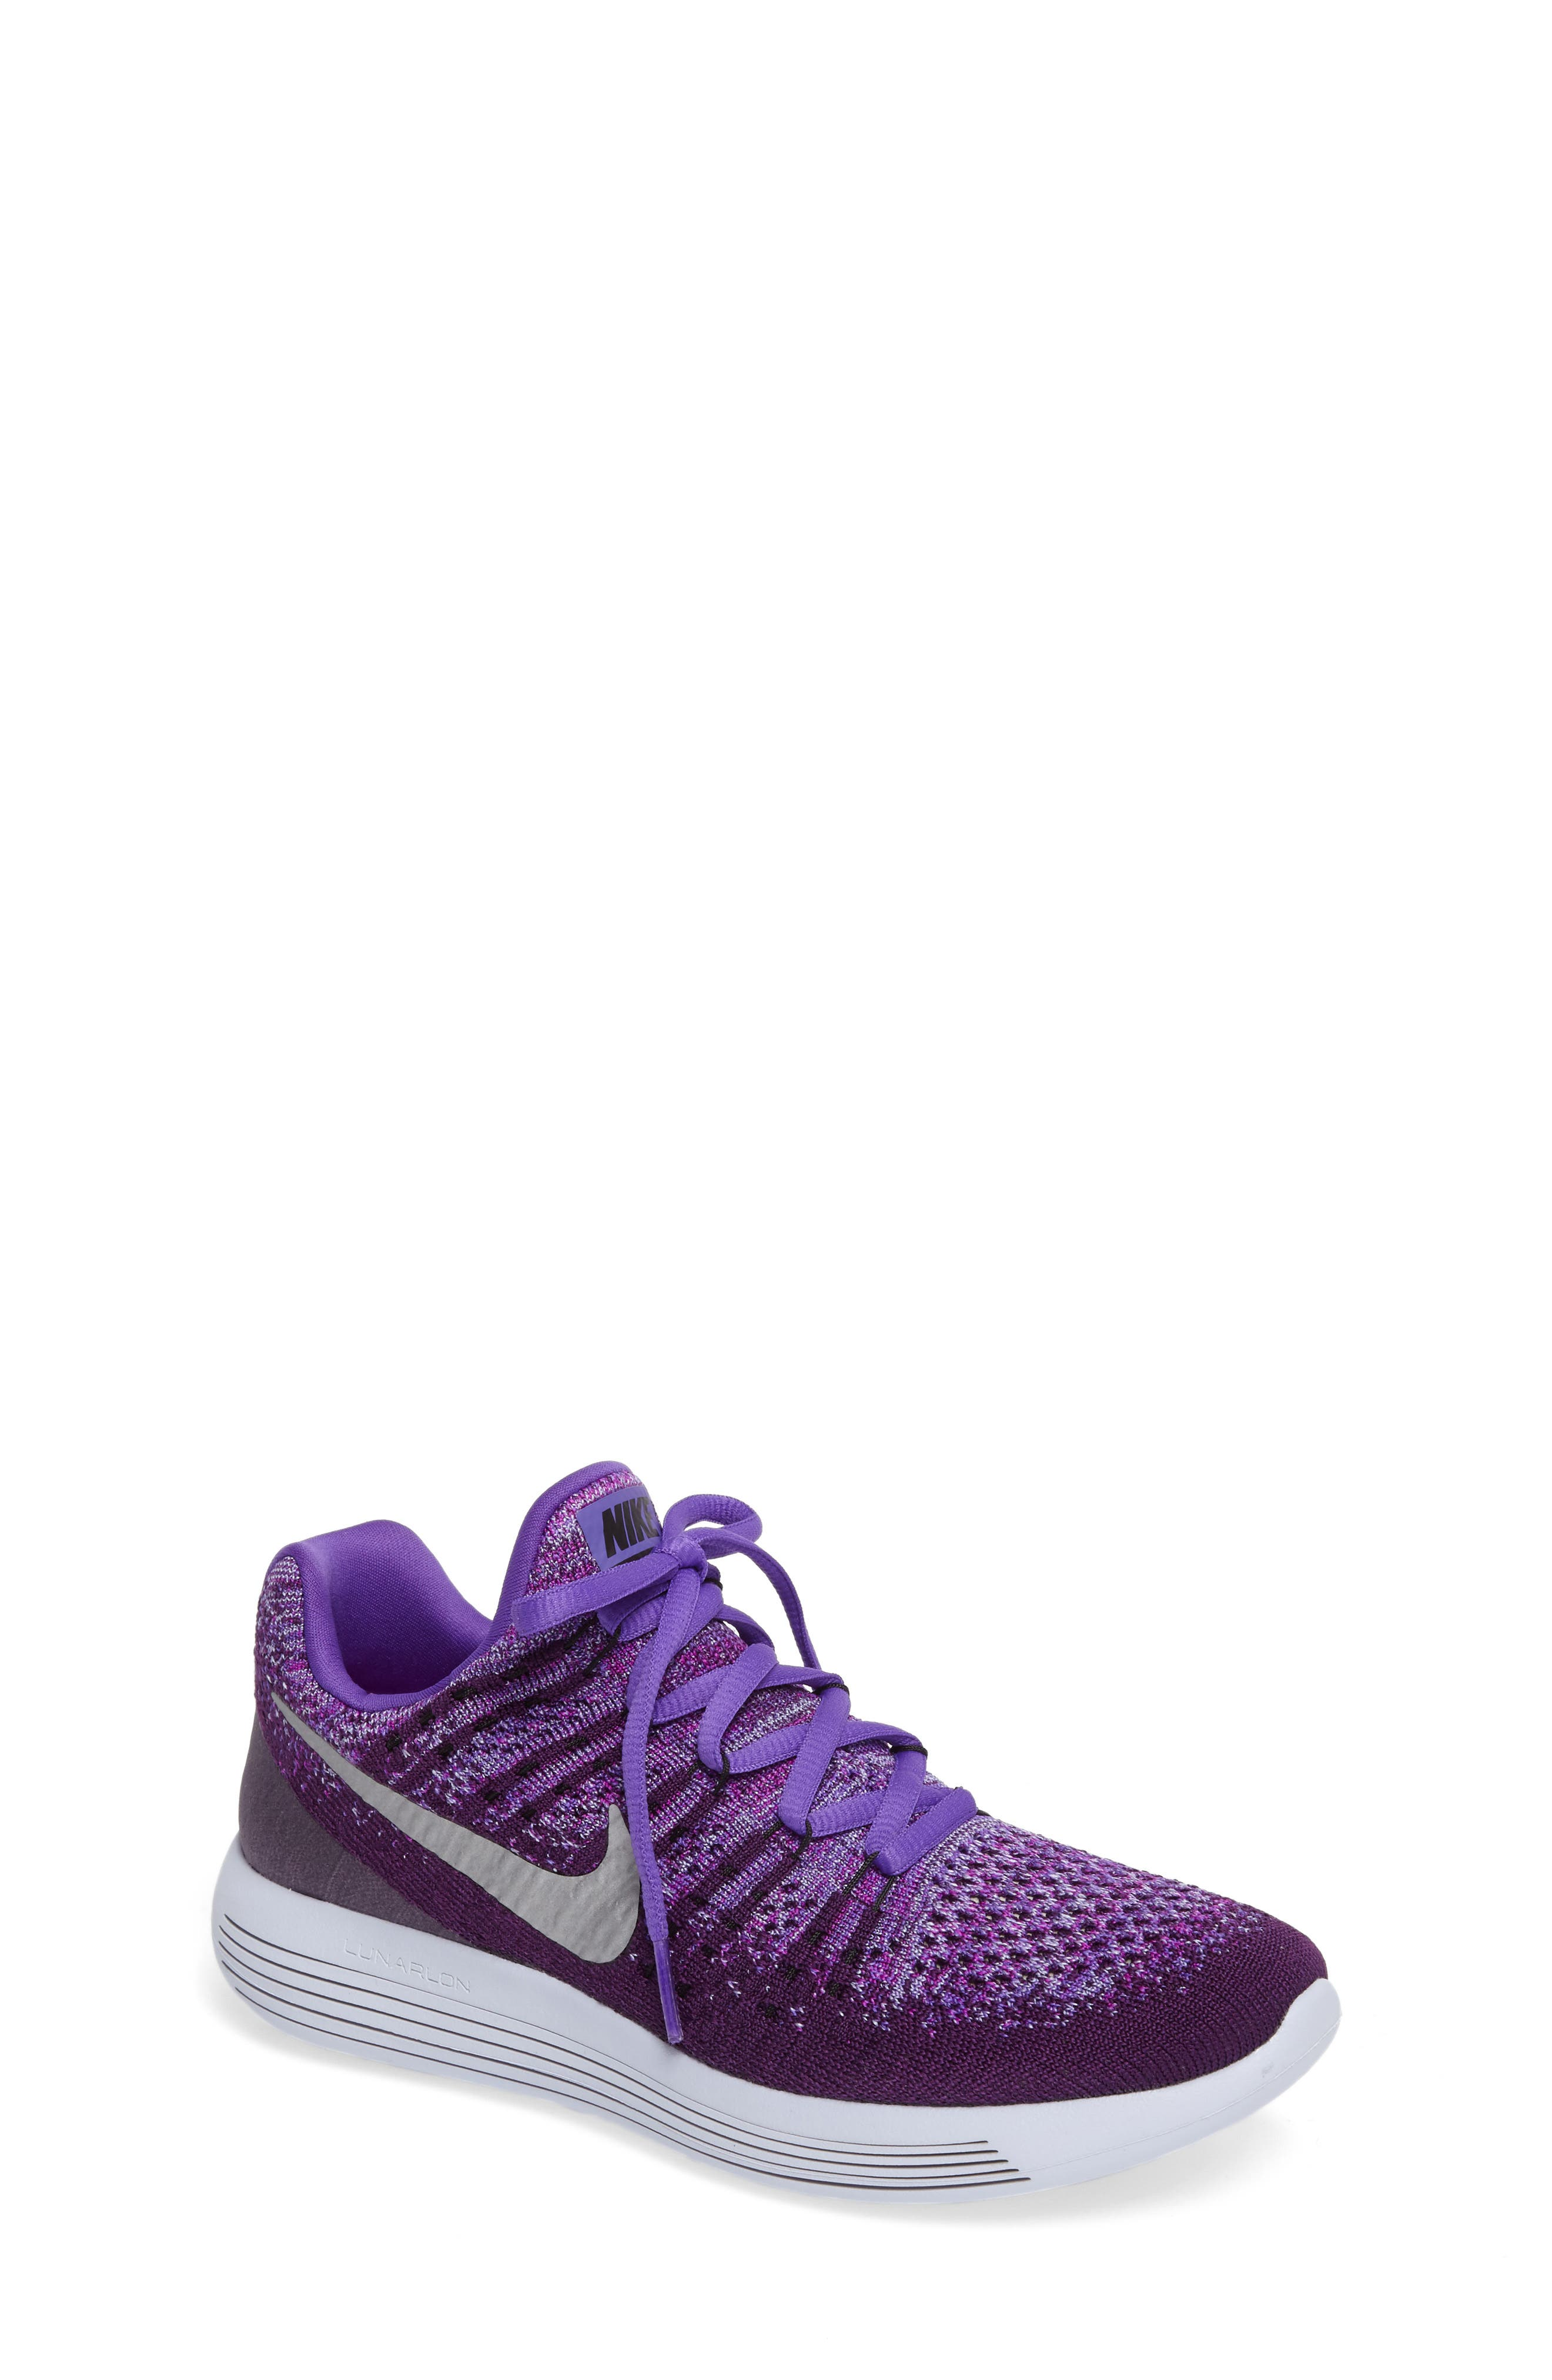 Alternate Image 1 Selected - Nike Flyknit LunarEpic Sneaker (Big Kid)